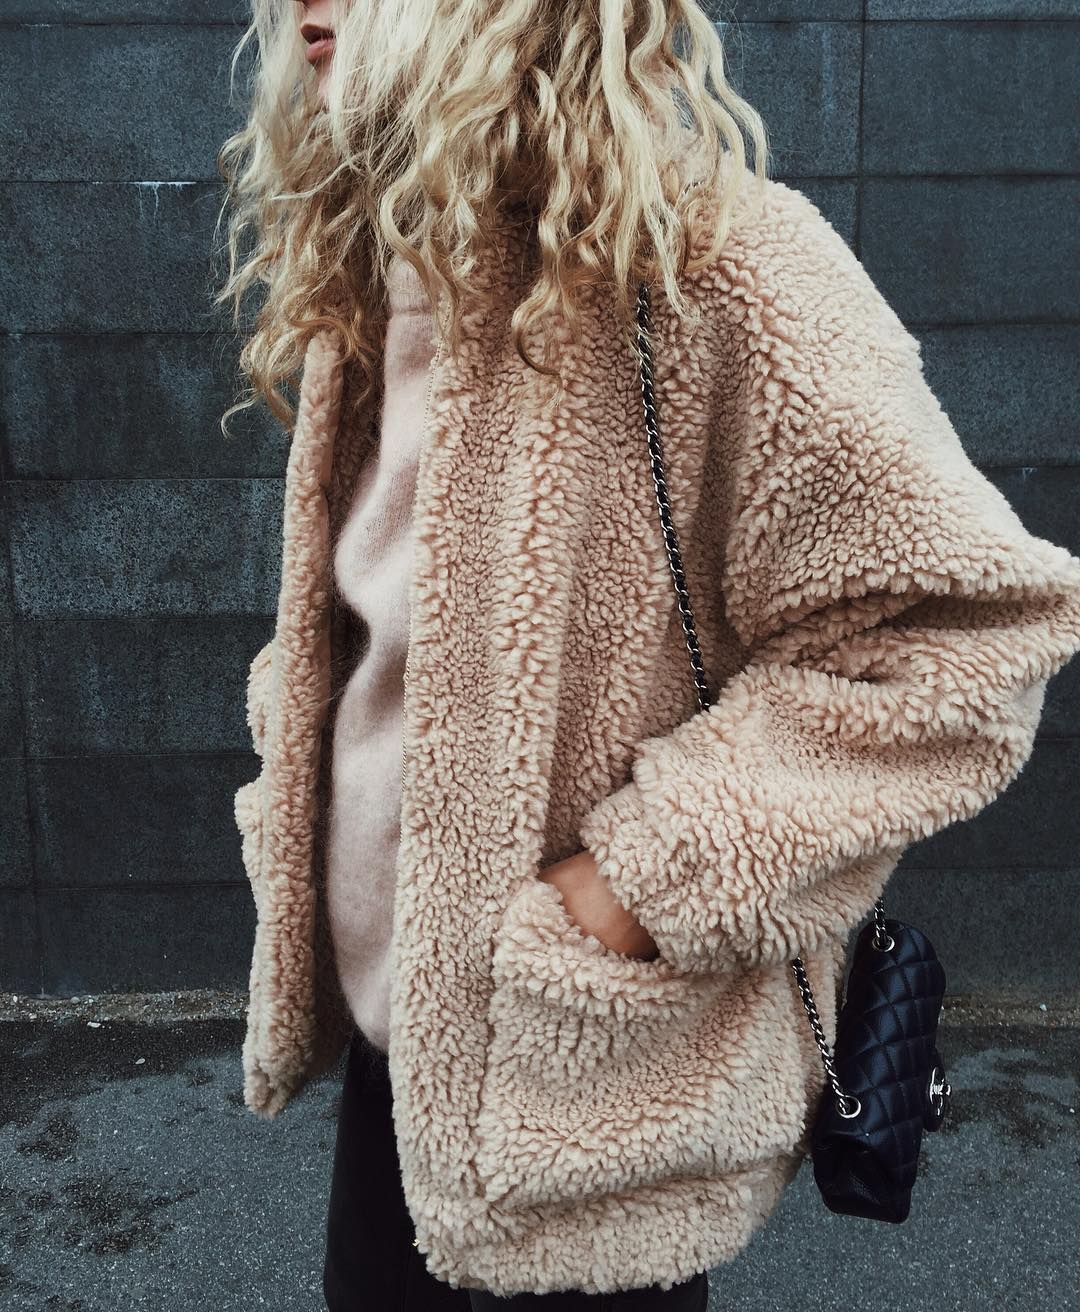 Colour outfit fuzzy beige sweater, winter clothing, street fashion, polar fleece, furry coat